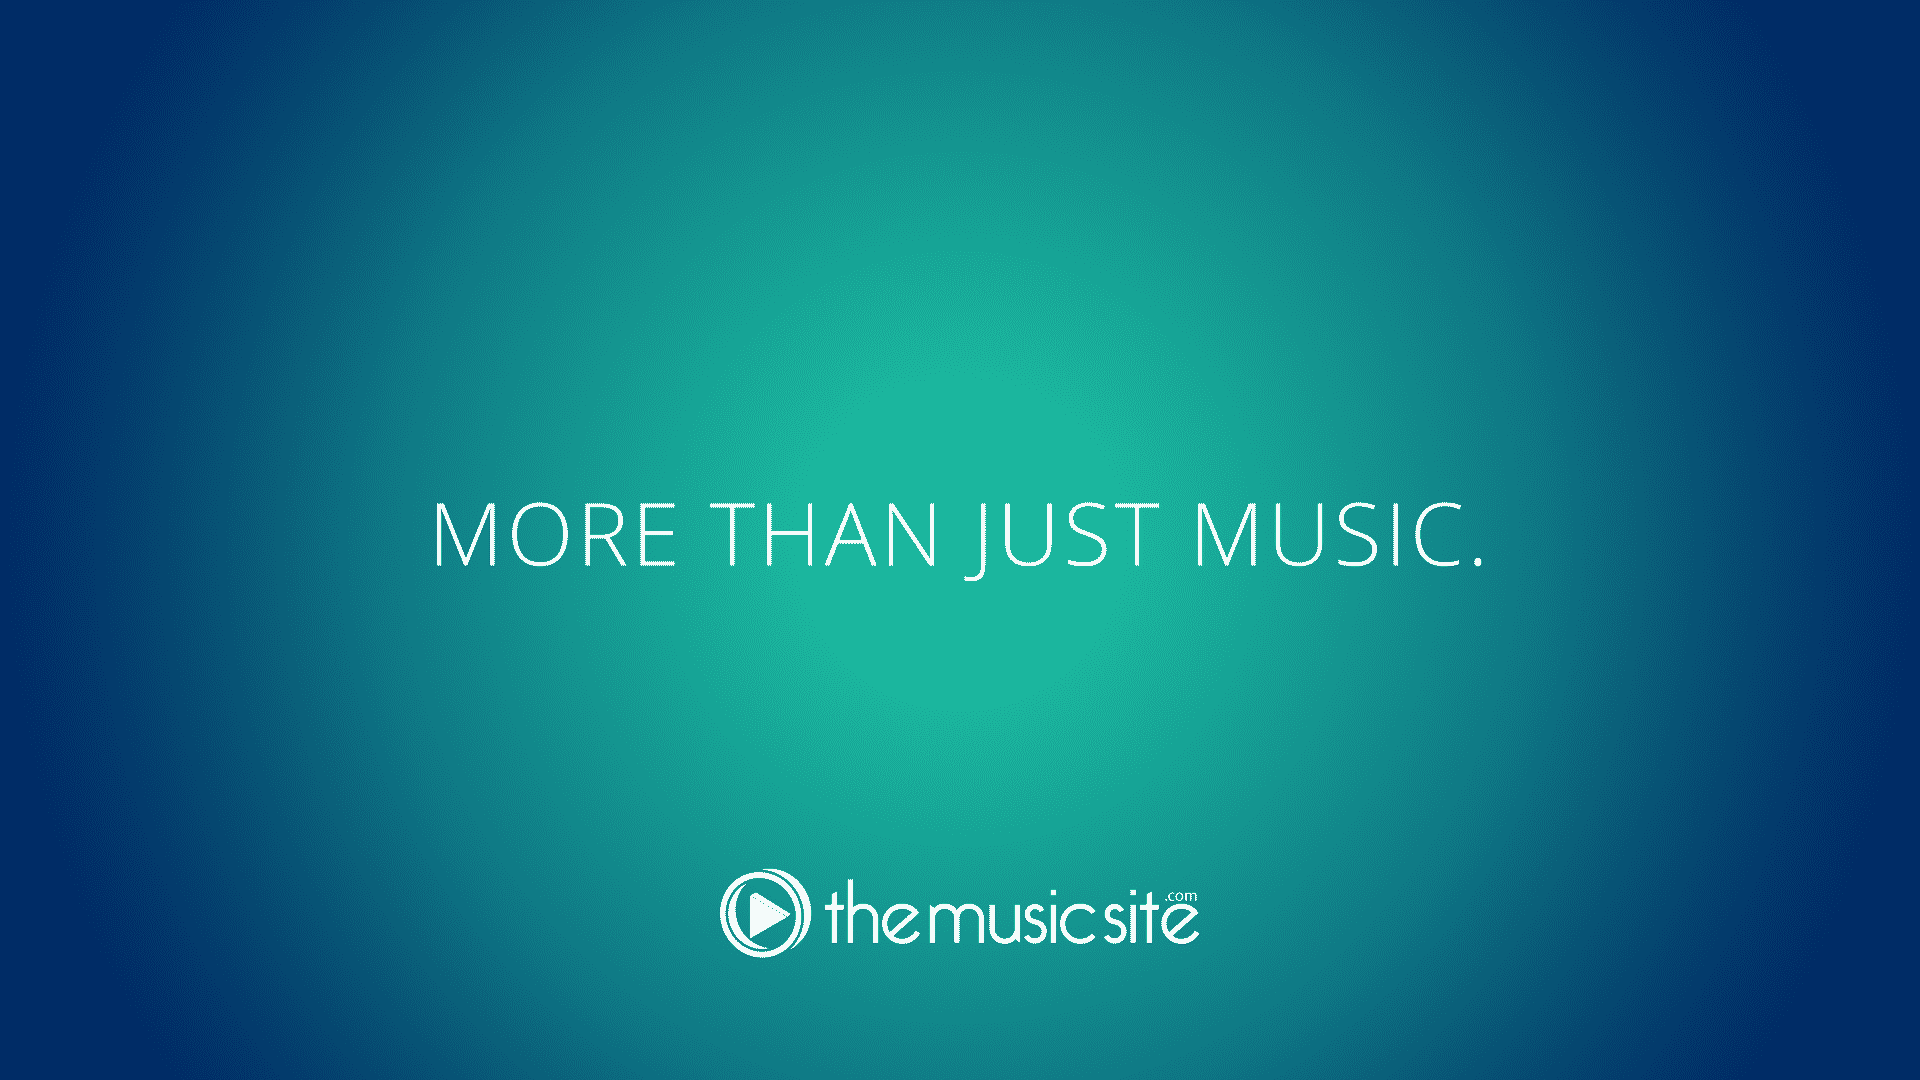 The Music Site - More Than Just Music.